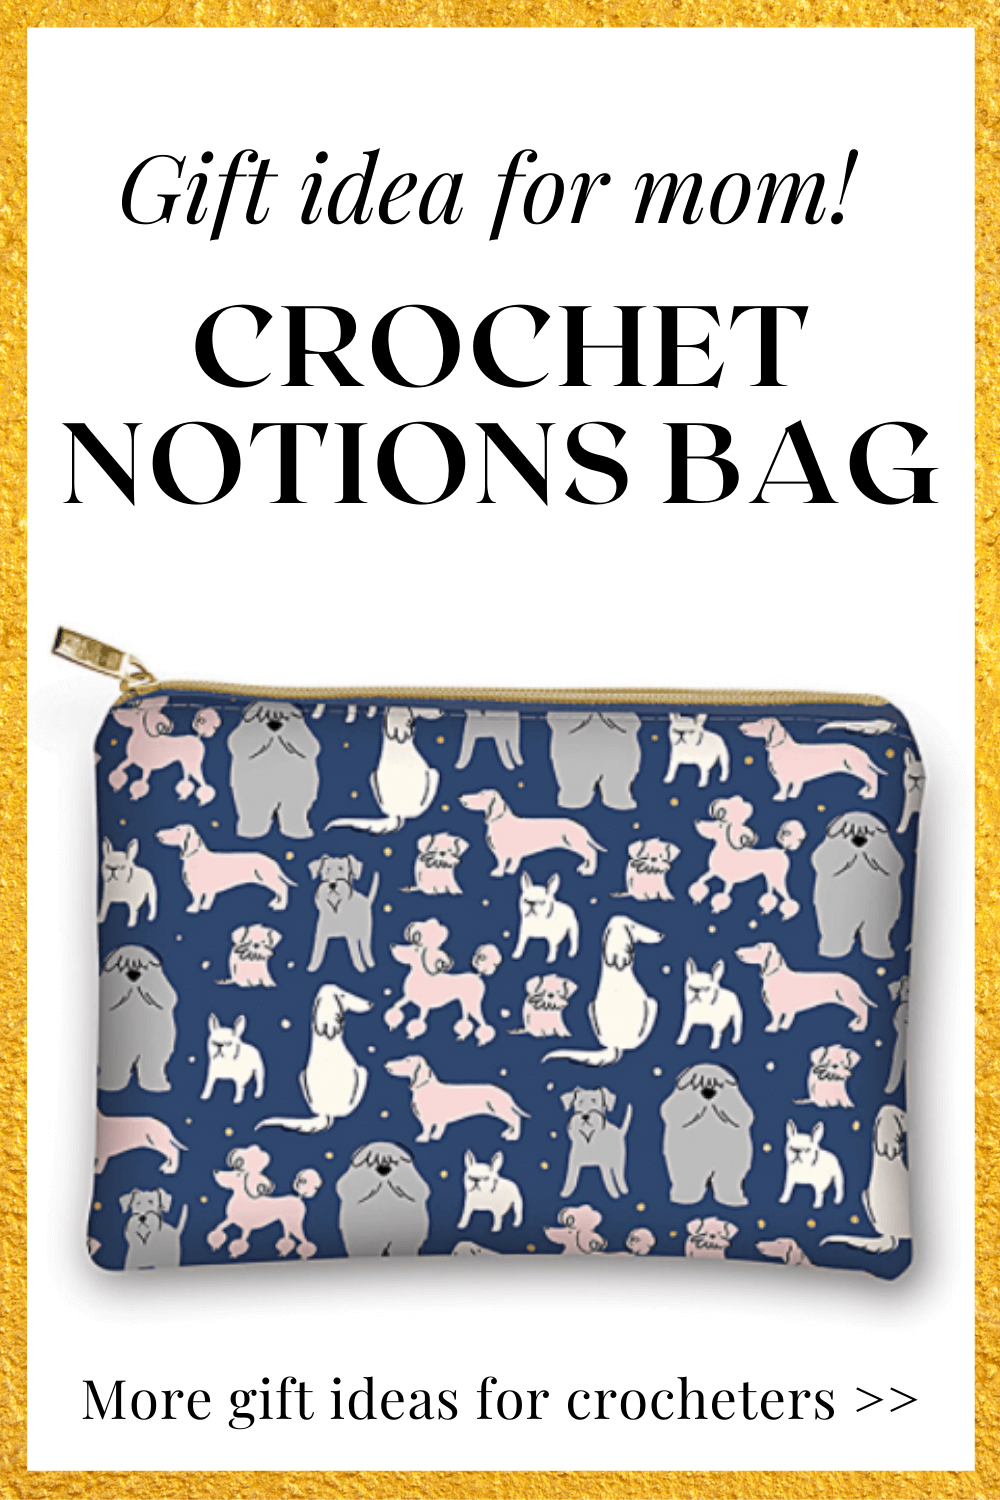 This cute pouch for notions is a perfect gift idea for your crocheting mom